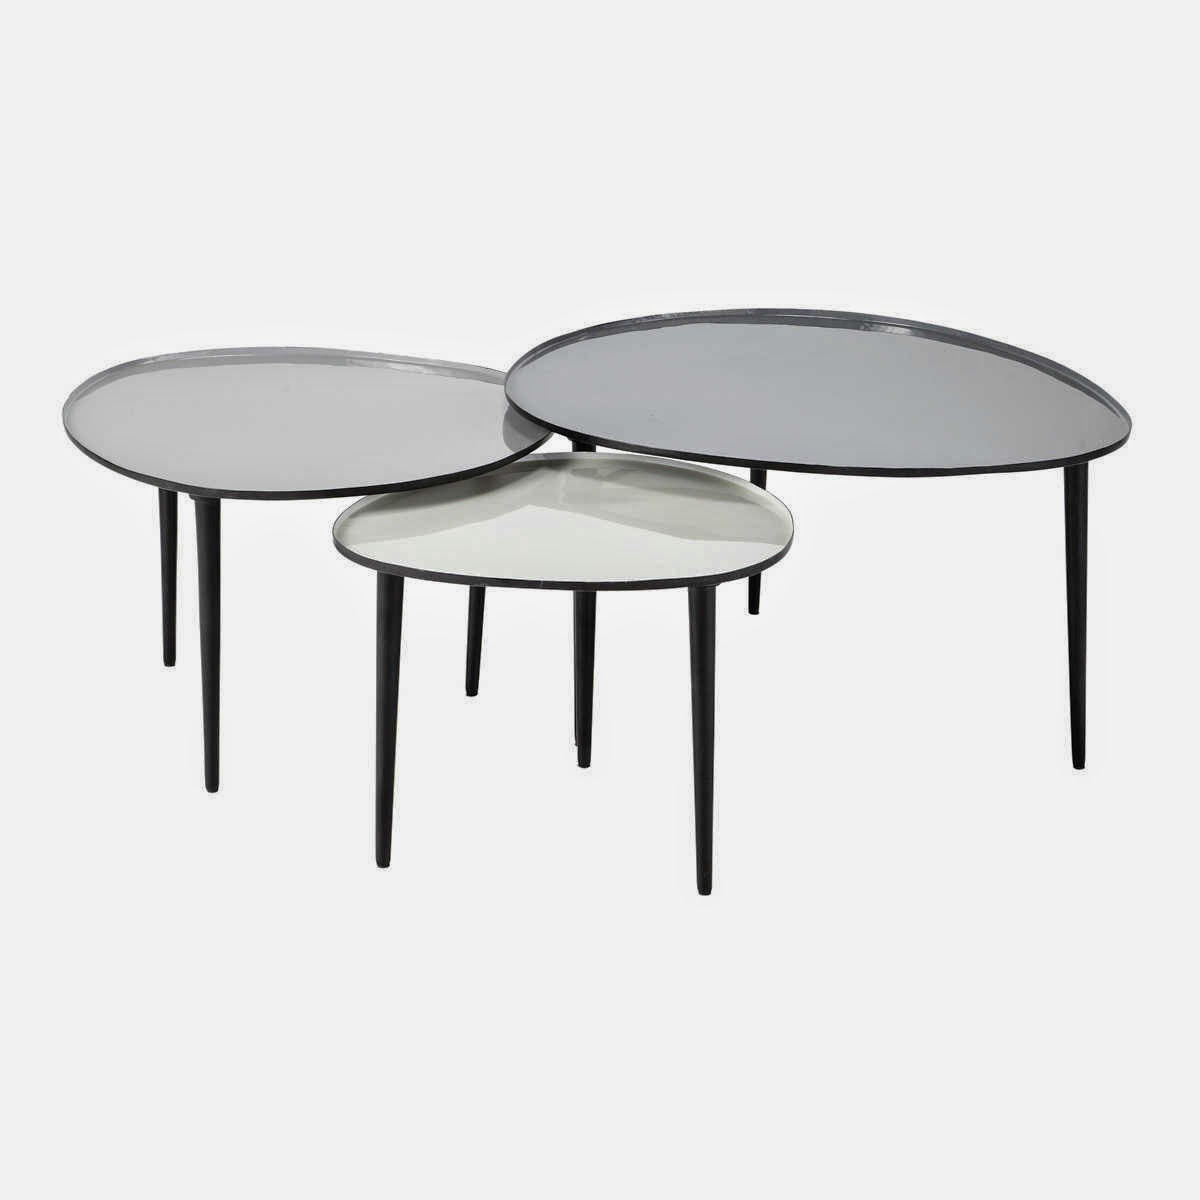 Les tables basses gigognes caract rielle - Table basse galet fly ...